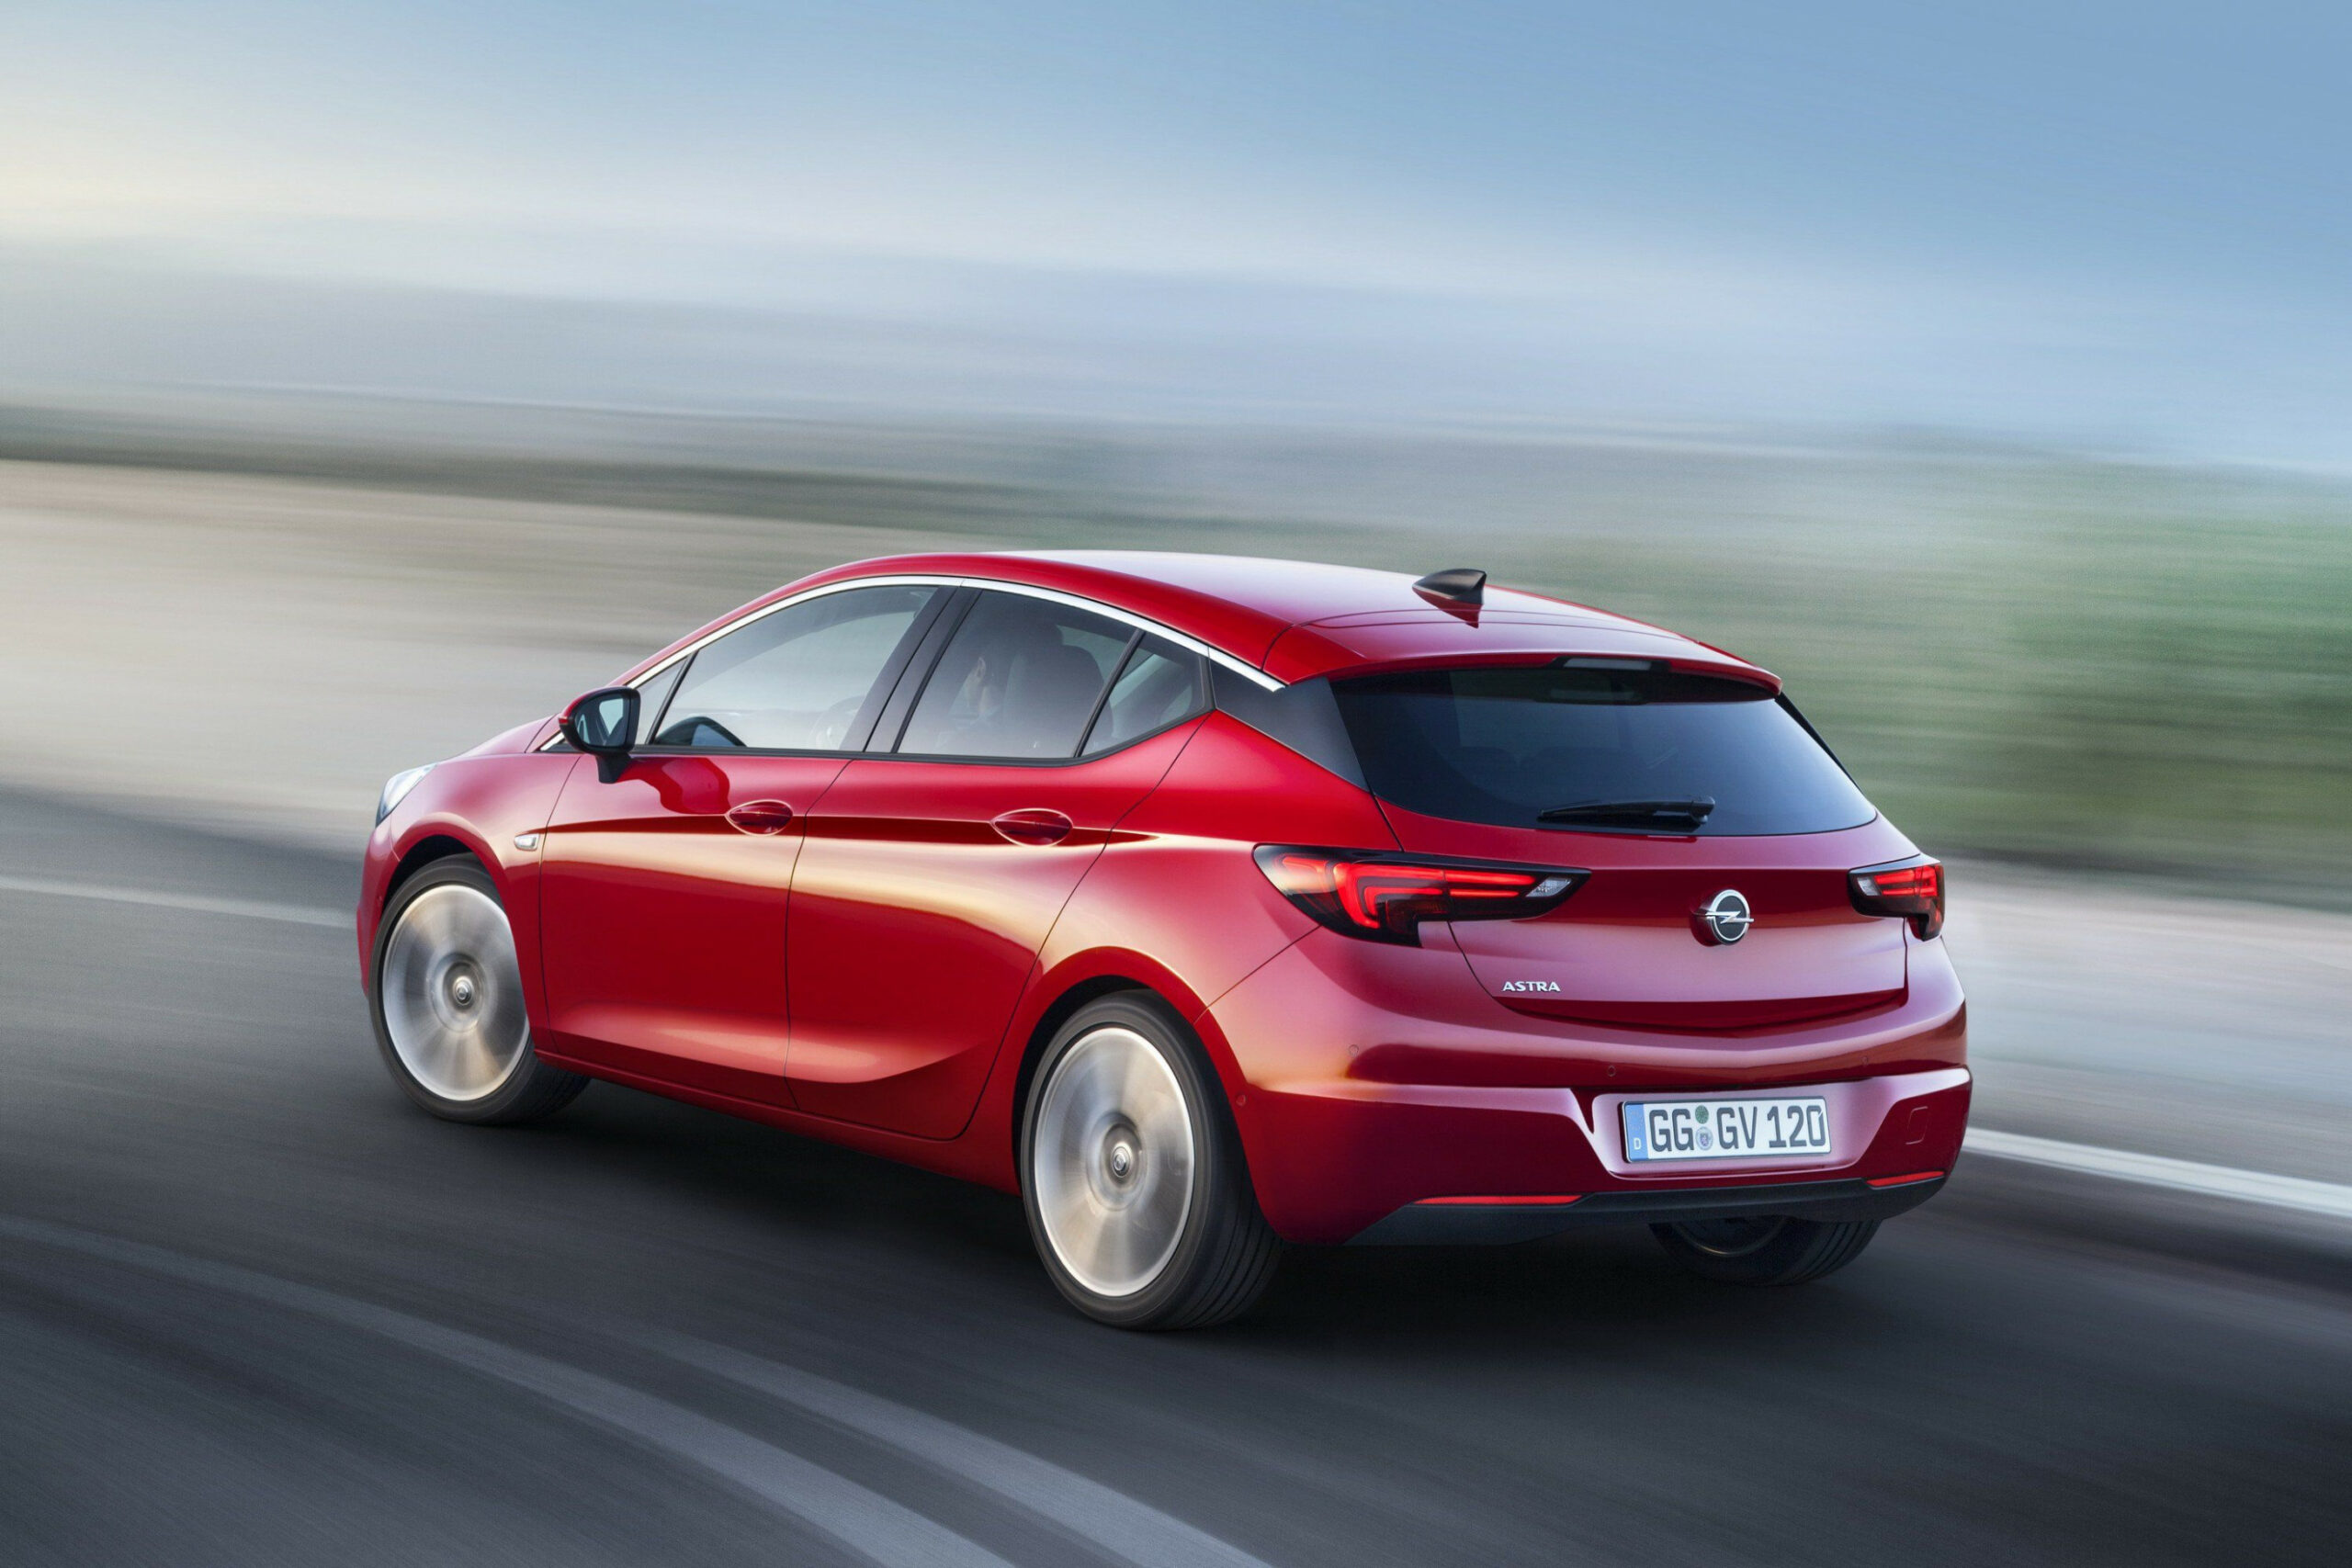 Exterior and Interior New Opel Astra 2022